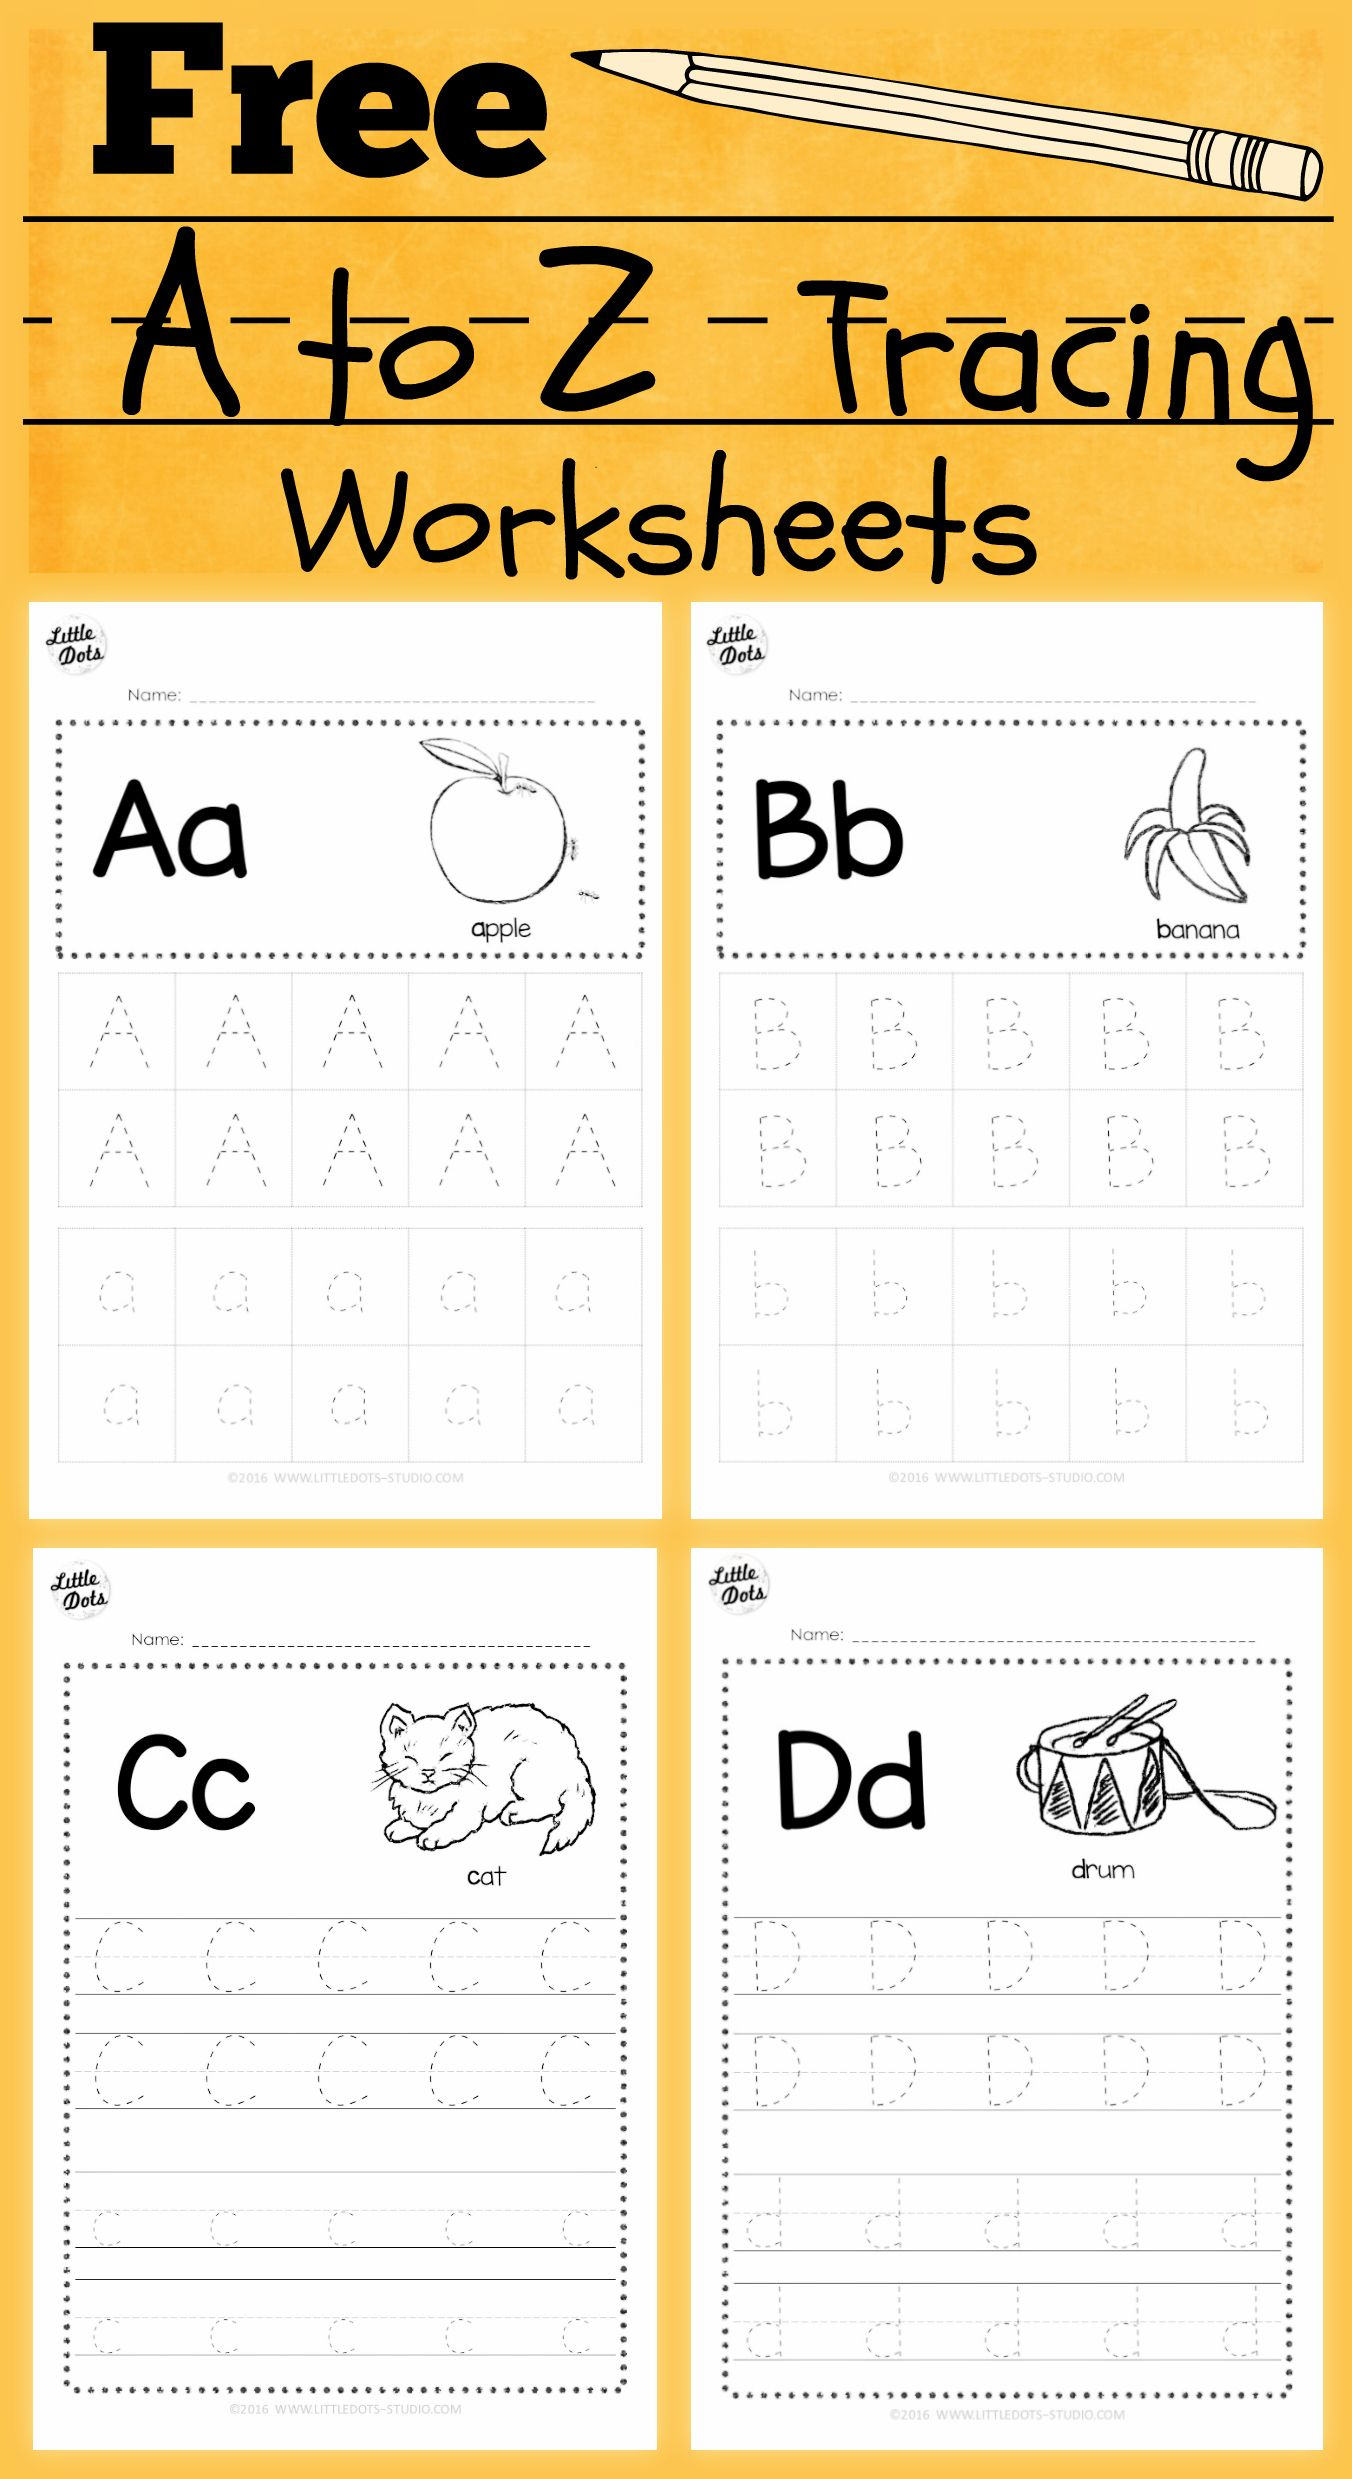 Download Free Alphabet Tracing Worksheets For Letter A To Z inside Pre K Alphabet Review Worksheets